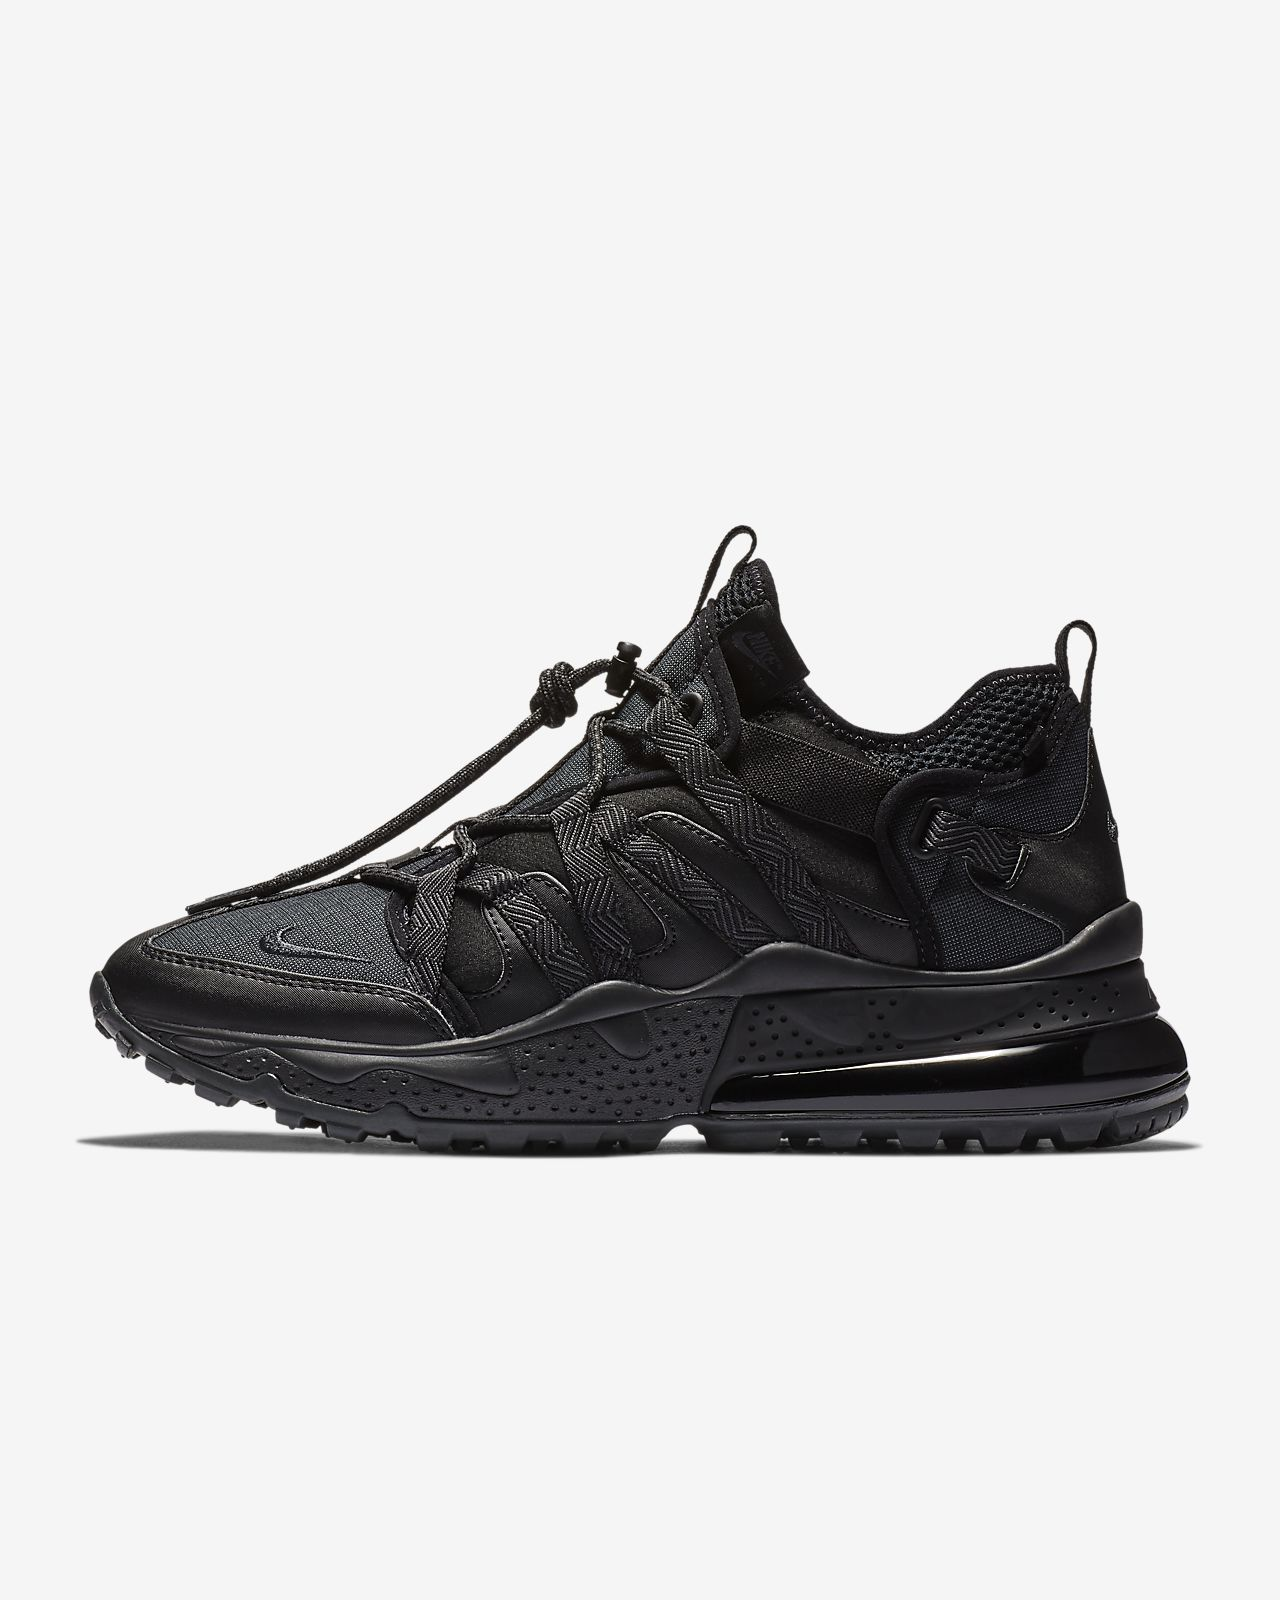 3af52f1748ea Nike Air Max 270 Bowfin Men s Shoe. Nike.com